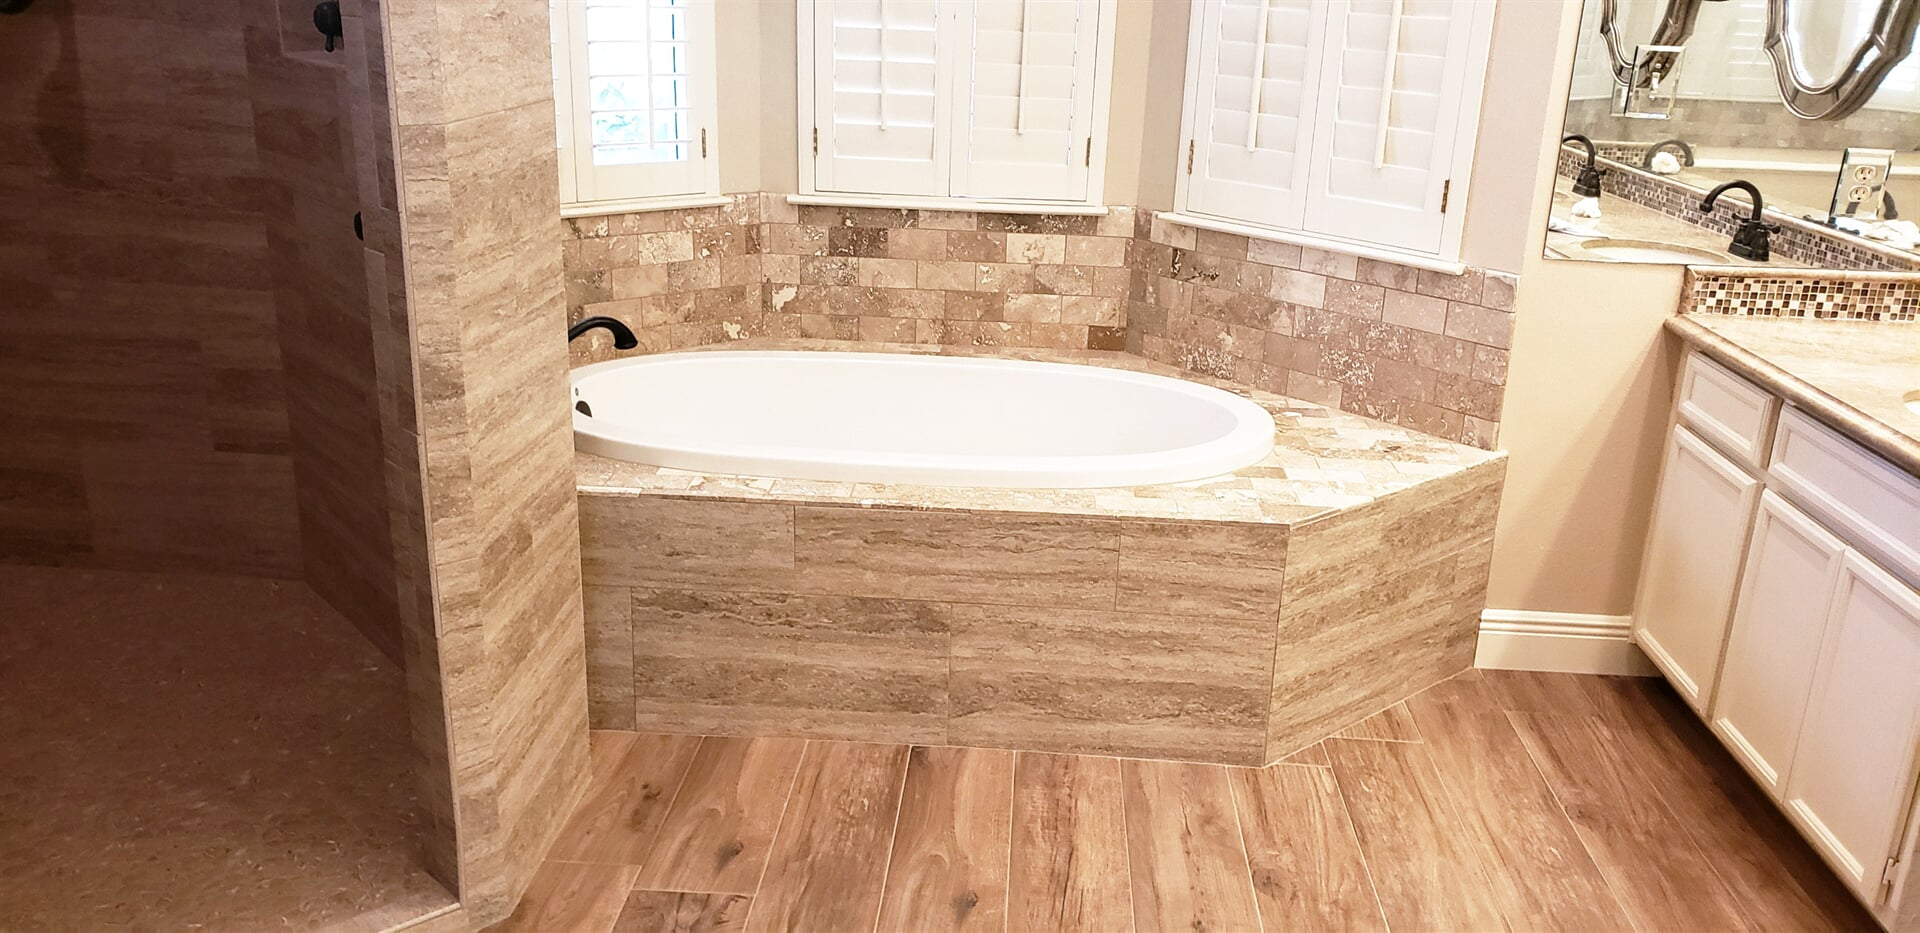 Tub installation in Beaumont, TX from Odile's Fine Flooring & Design